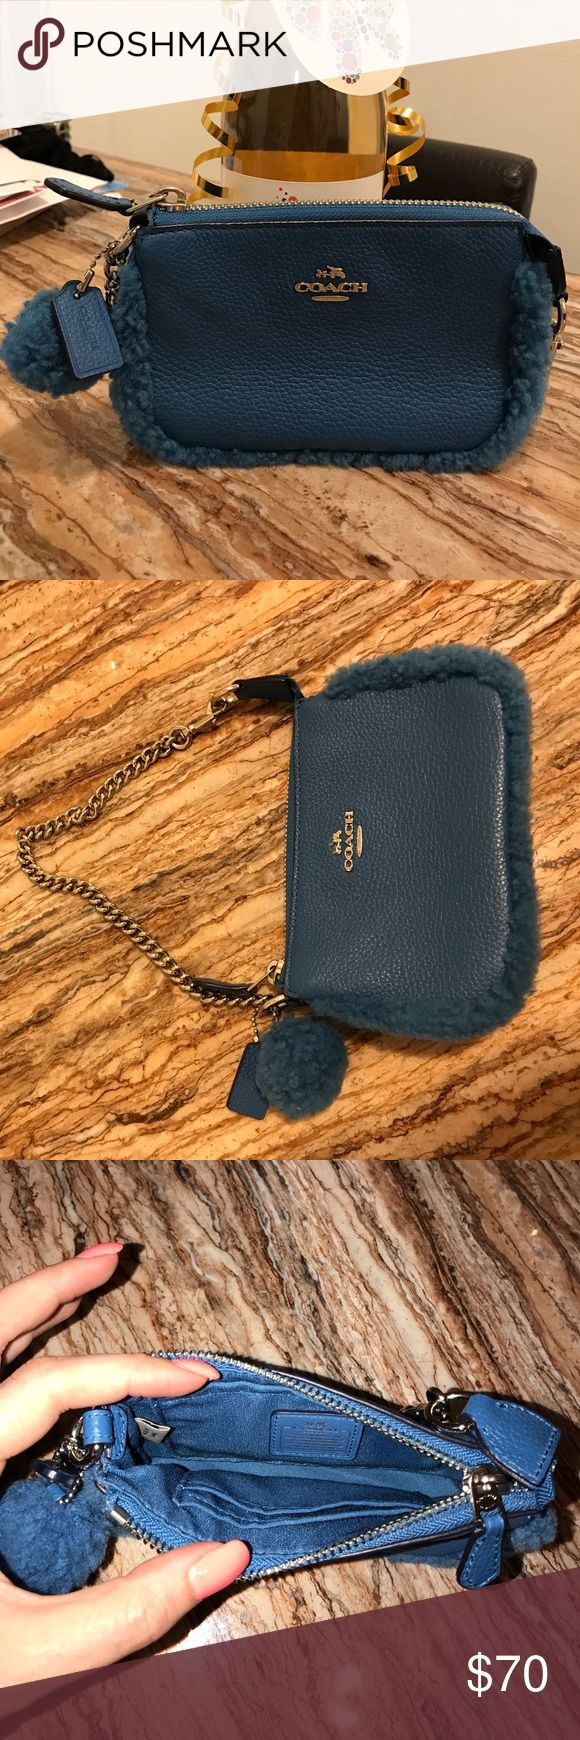 ✨ Adorable Shearling Peacock Nolita Wristlet ✨ Small Coach bag, never used. Please refer to description in picture for additional detailed information and size pertaining to bag. Please note that a coach box is not included ☺️ let me know if you have any questions Coach Bags Clutches & Wristlets